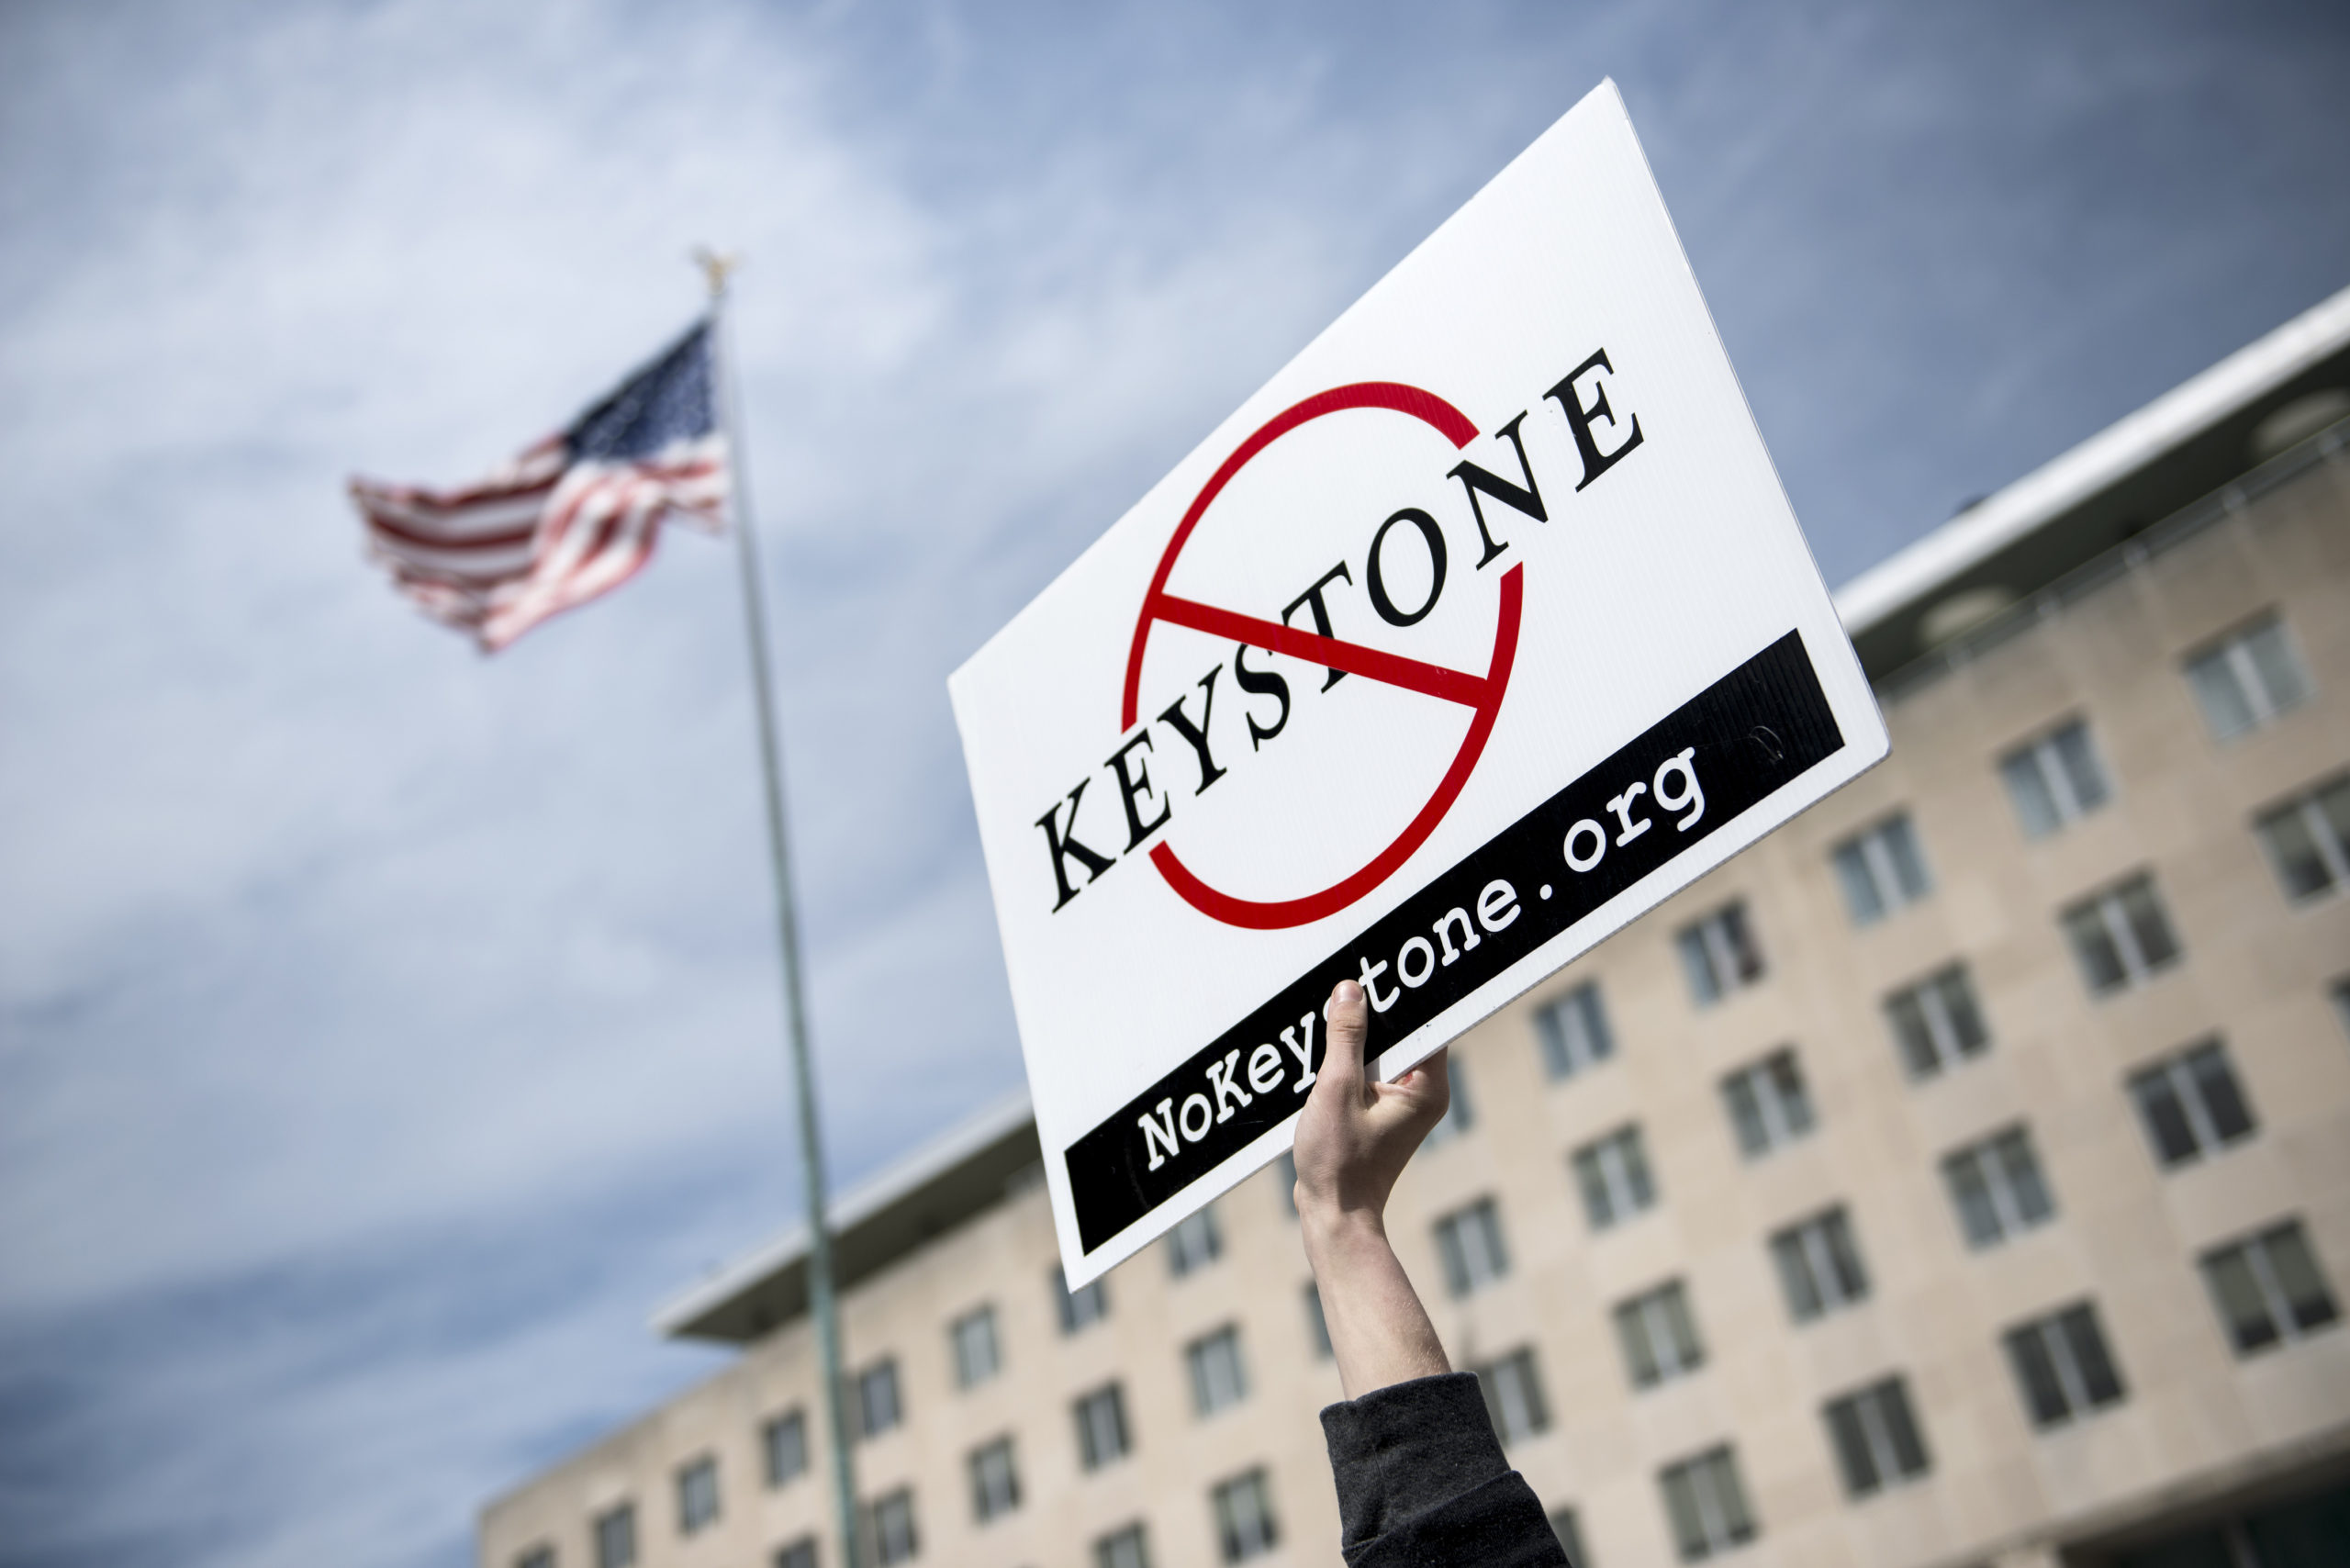 An activist holds up a sign outside the State Department during a protest of the Keystone XL pipeline on March 7, 2014 in Washington D.C. (Brendan Smialowski/AFP via Getty Images)